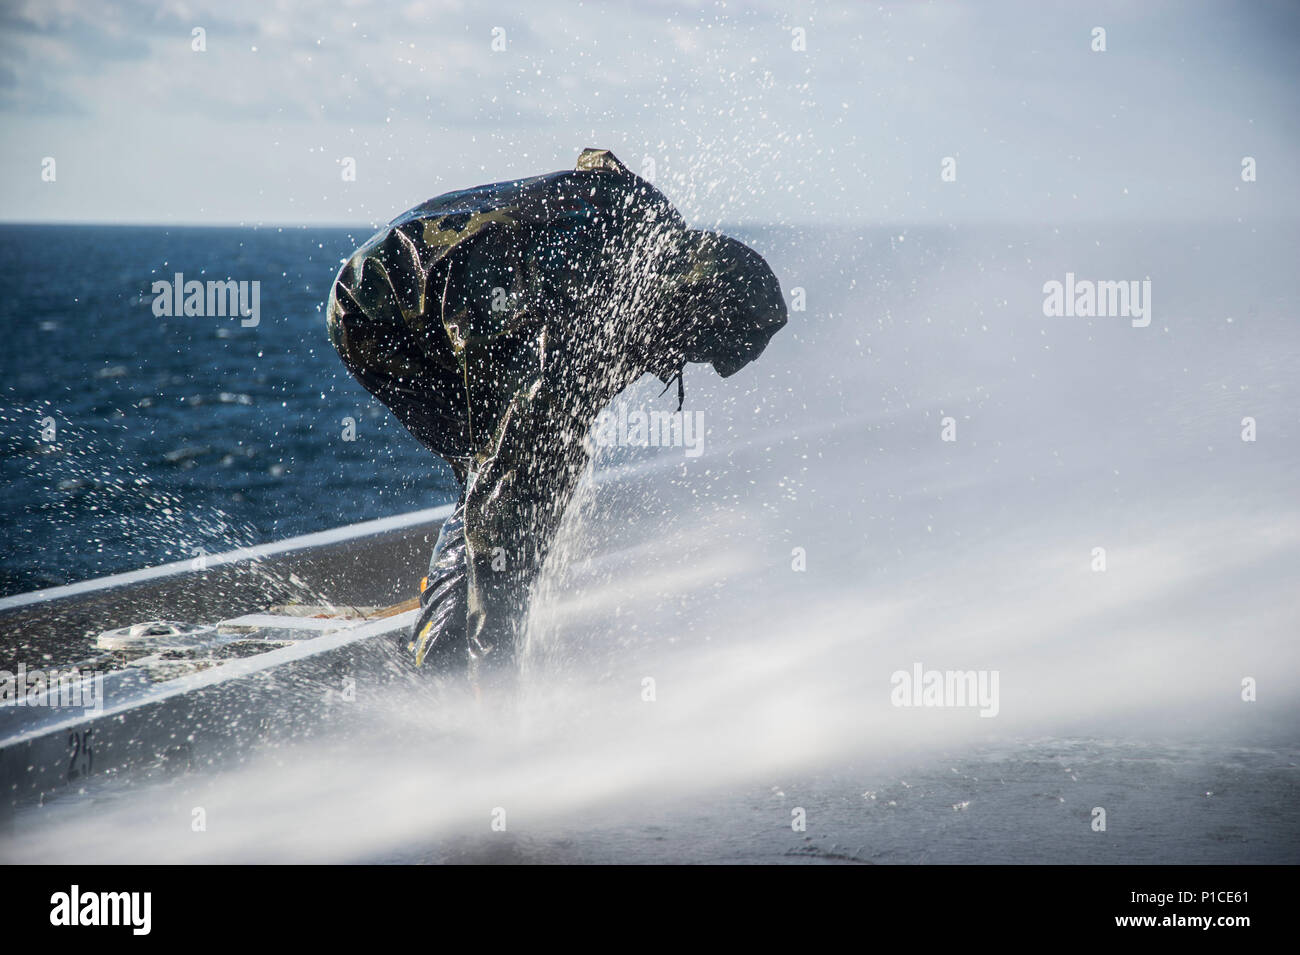 Unclog Stock Photos & Unclog Stock Images - Alamy